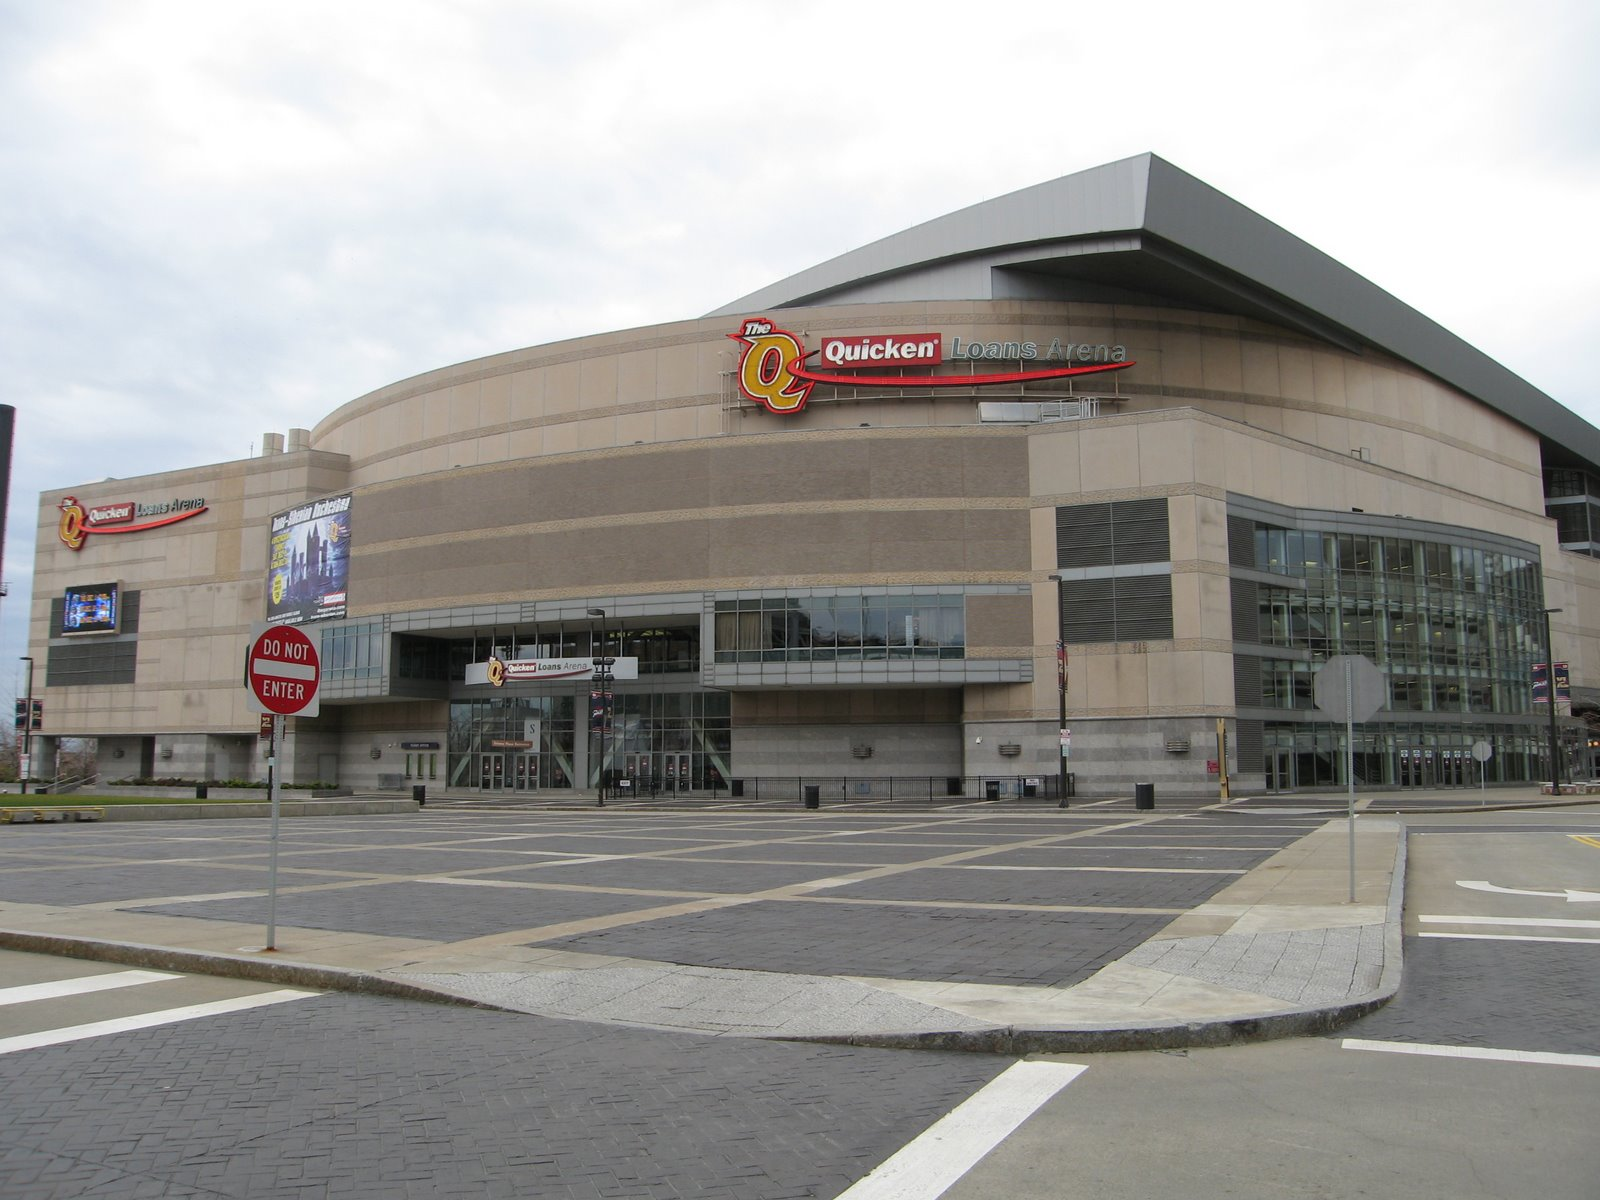 Rock amp bus provides bus transportation to quicken loans arena our